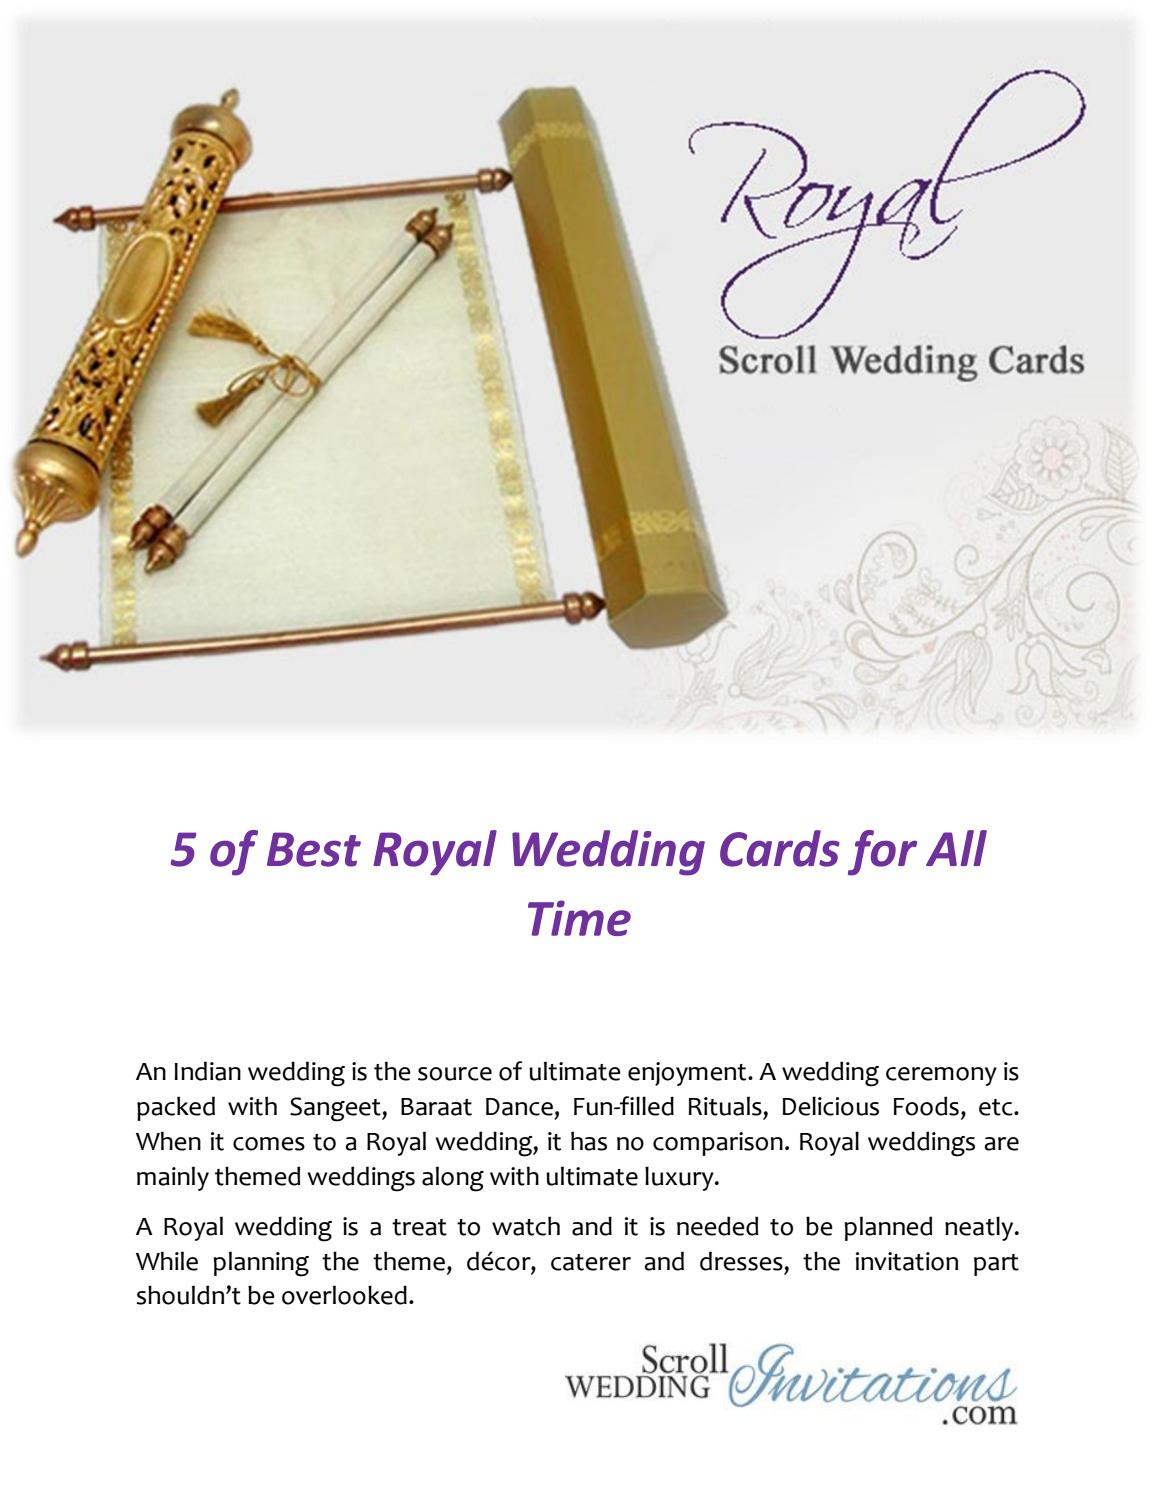 5 of best royal wedding cards for all time by Scroll Wedding ...